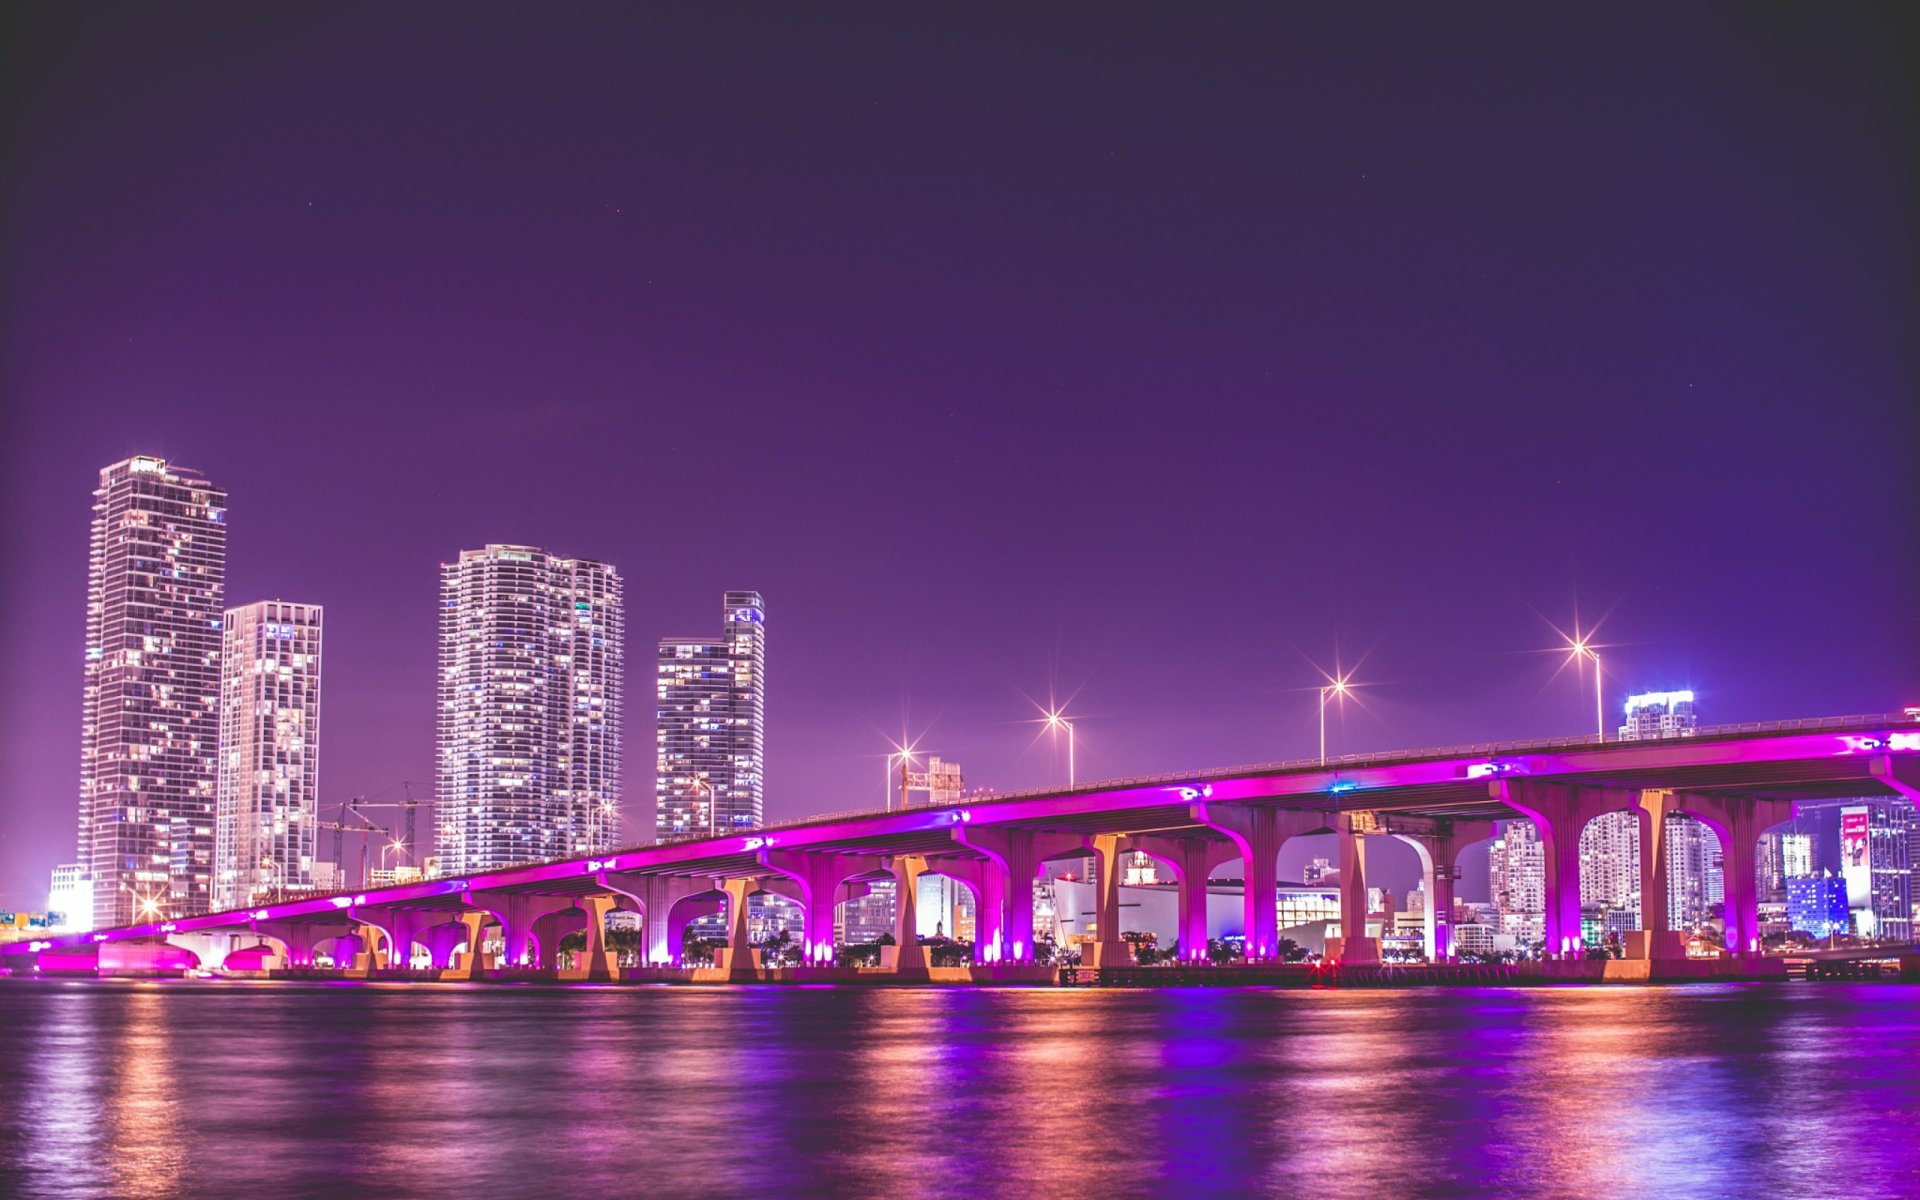 Miami Iphone X Wallpaper Bridge In Miami At Night Hd Wallpaper Background Image